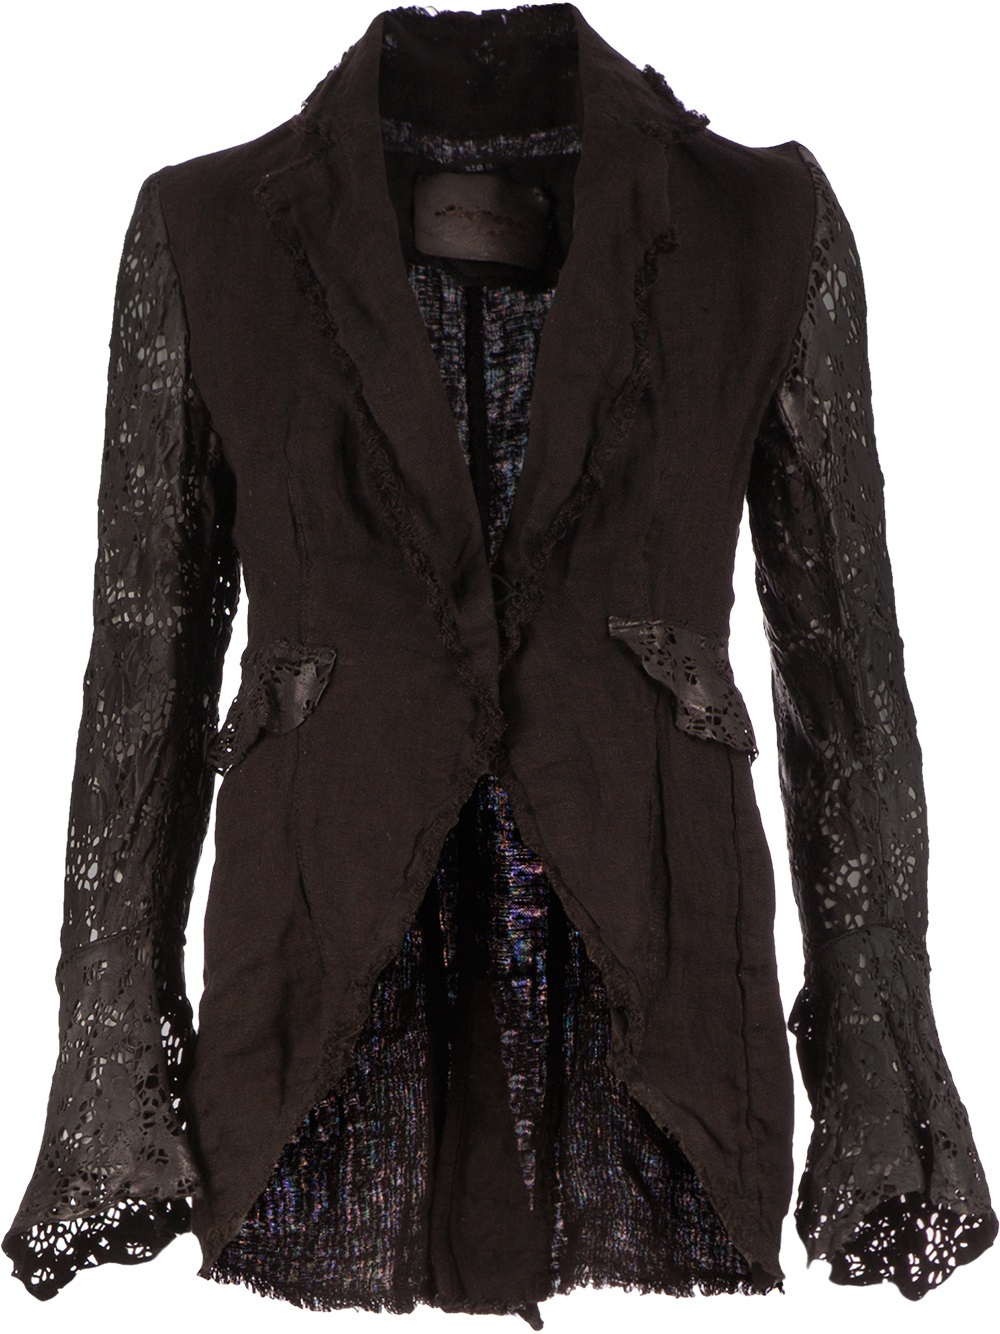 Le Cuir Perdu Laced Detail Jacket In Black Lyst